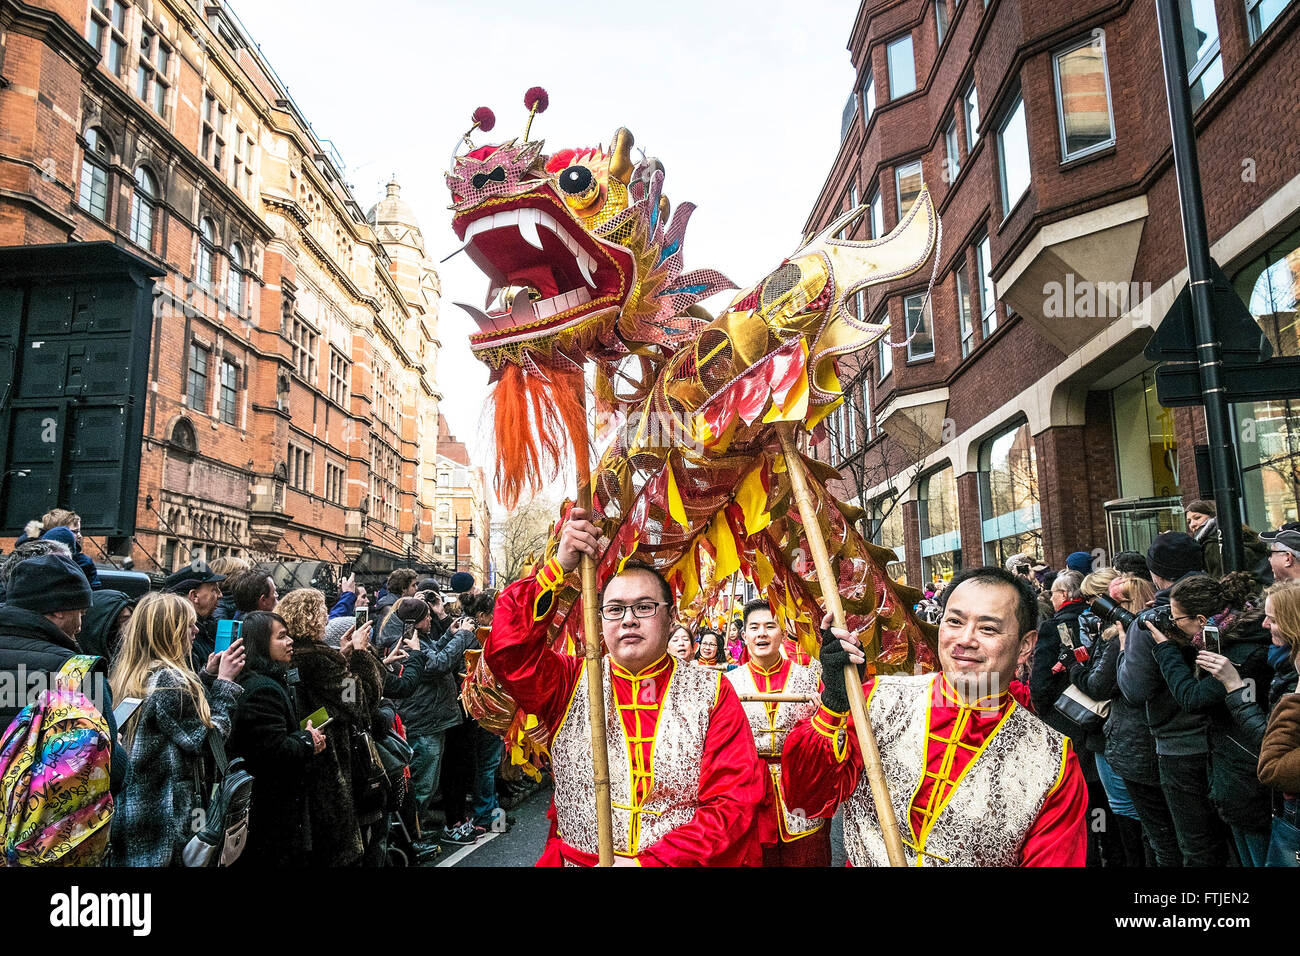 In London thousands of people celebrate the Chinese New Year 2016 - The Year of the Monkey. - Stock Image